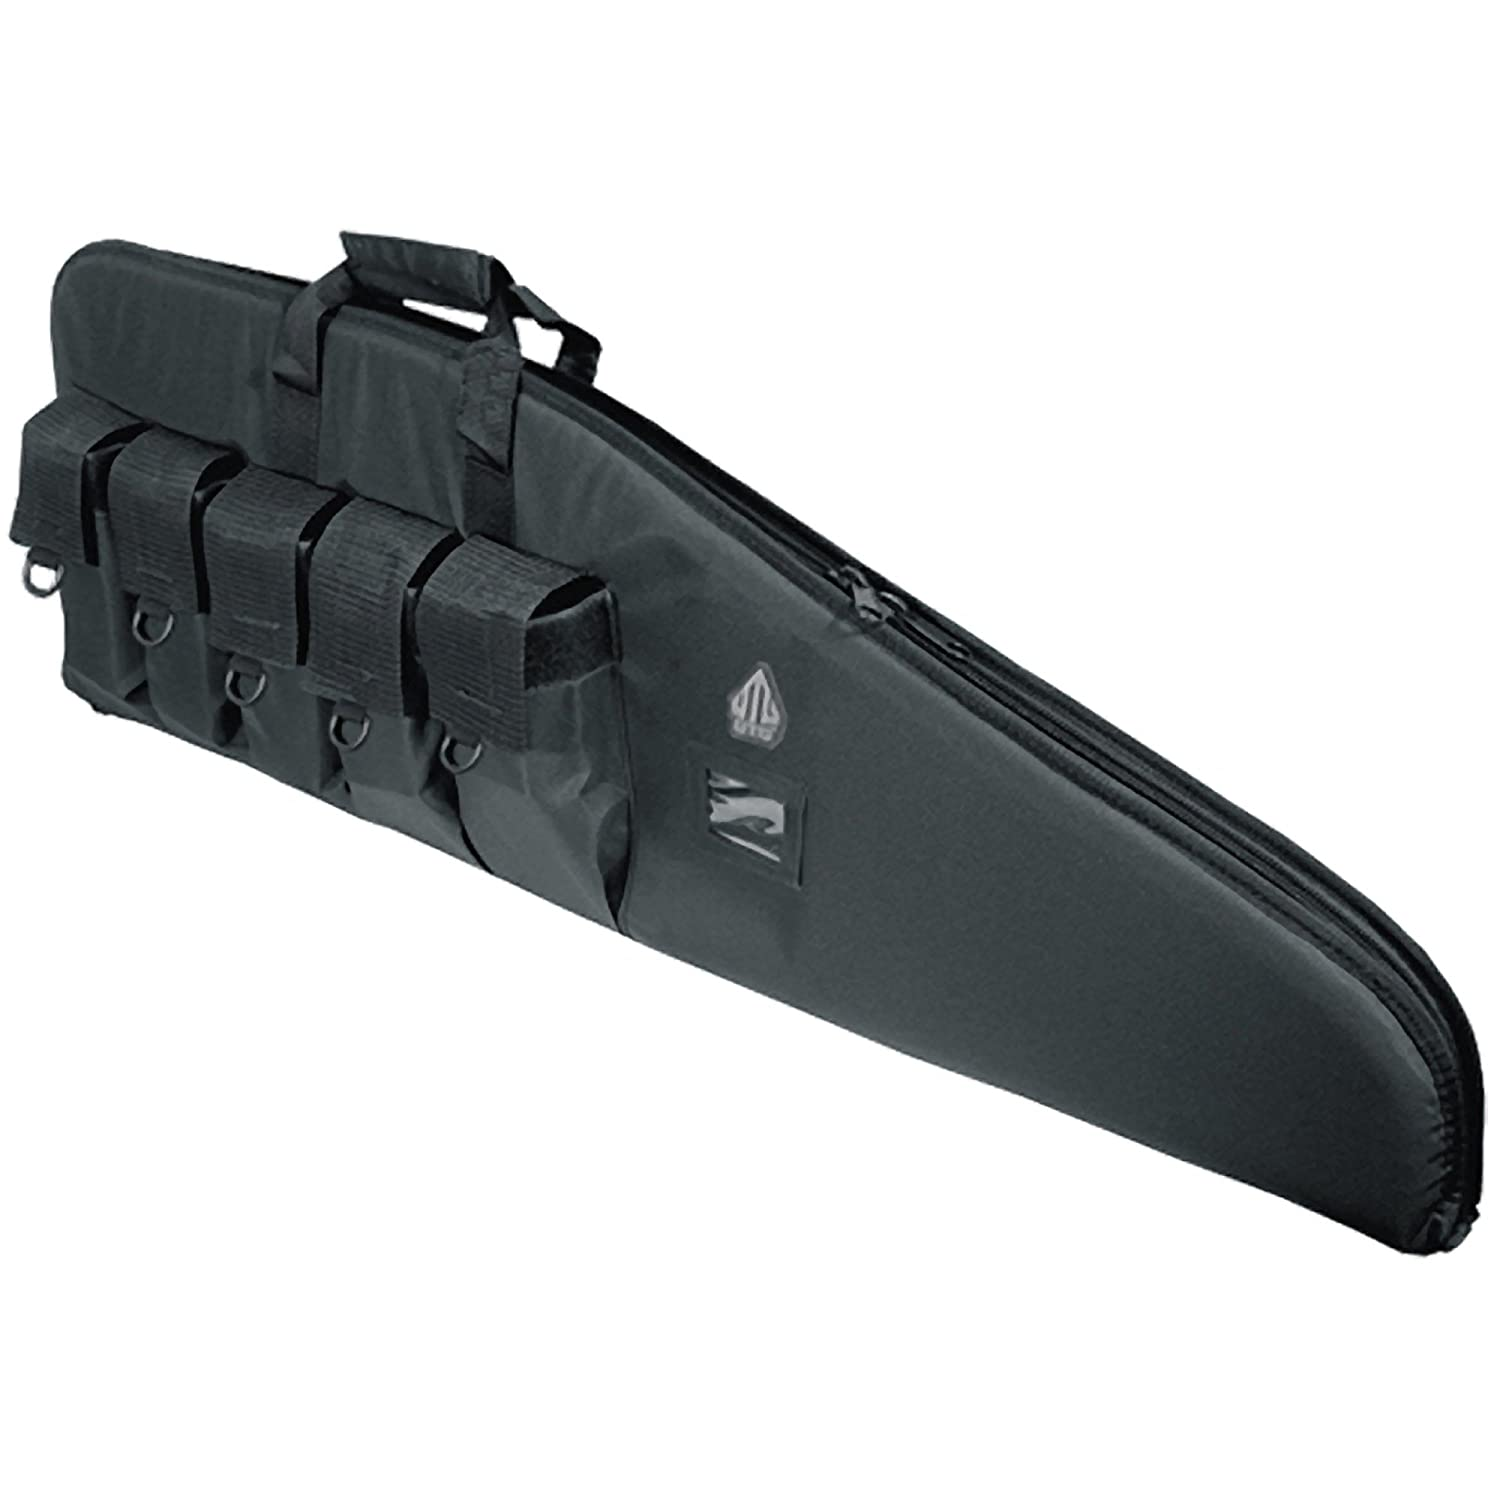 UTG DC Series Tactical Gun Case with Added Capacity Black